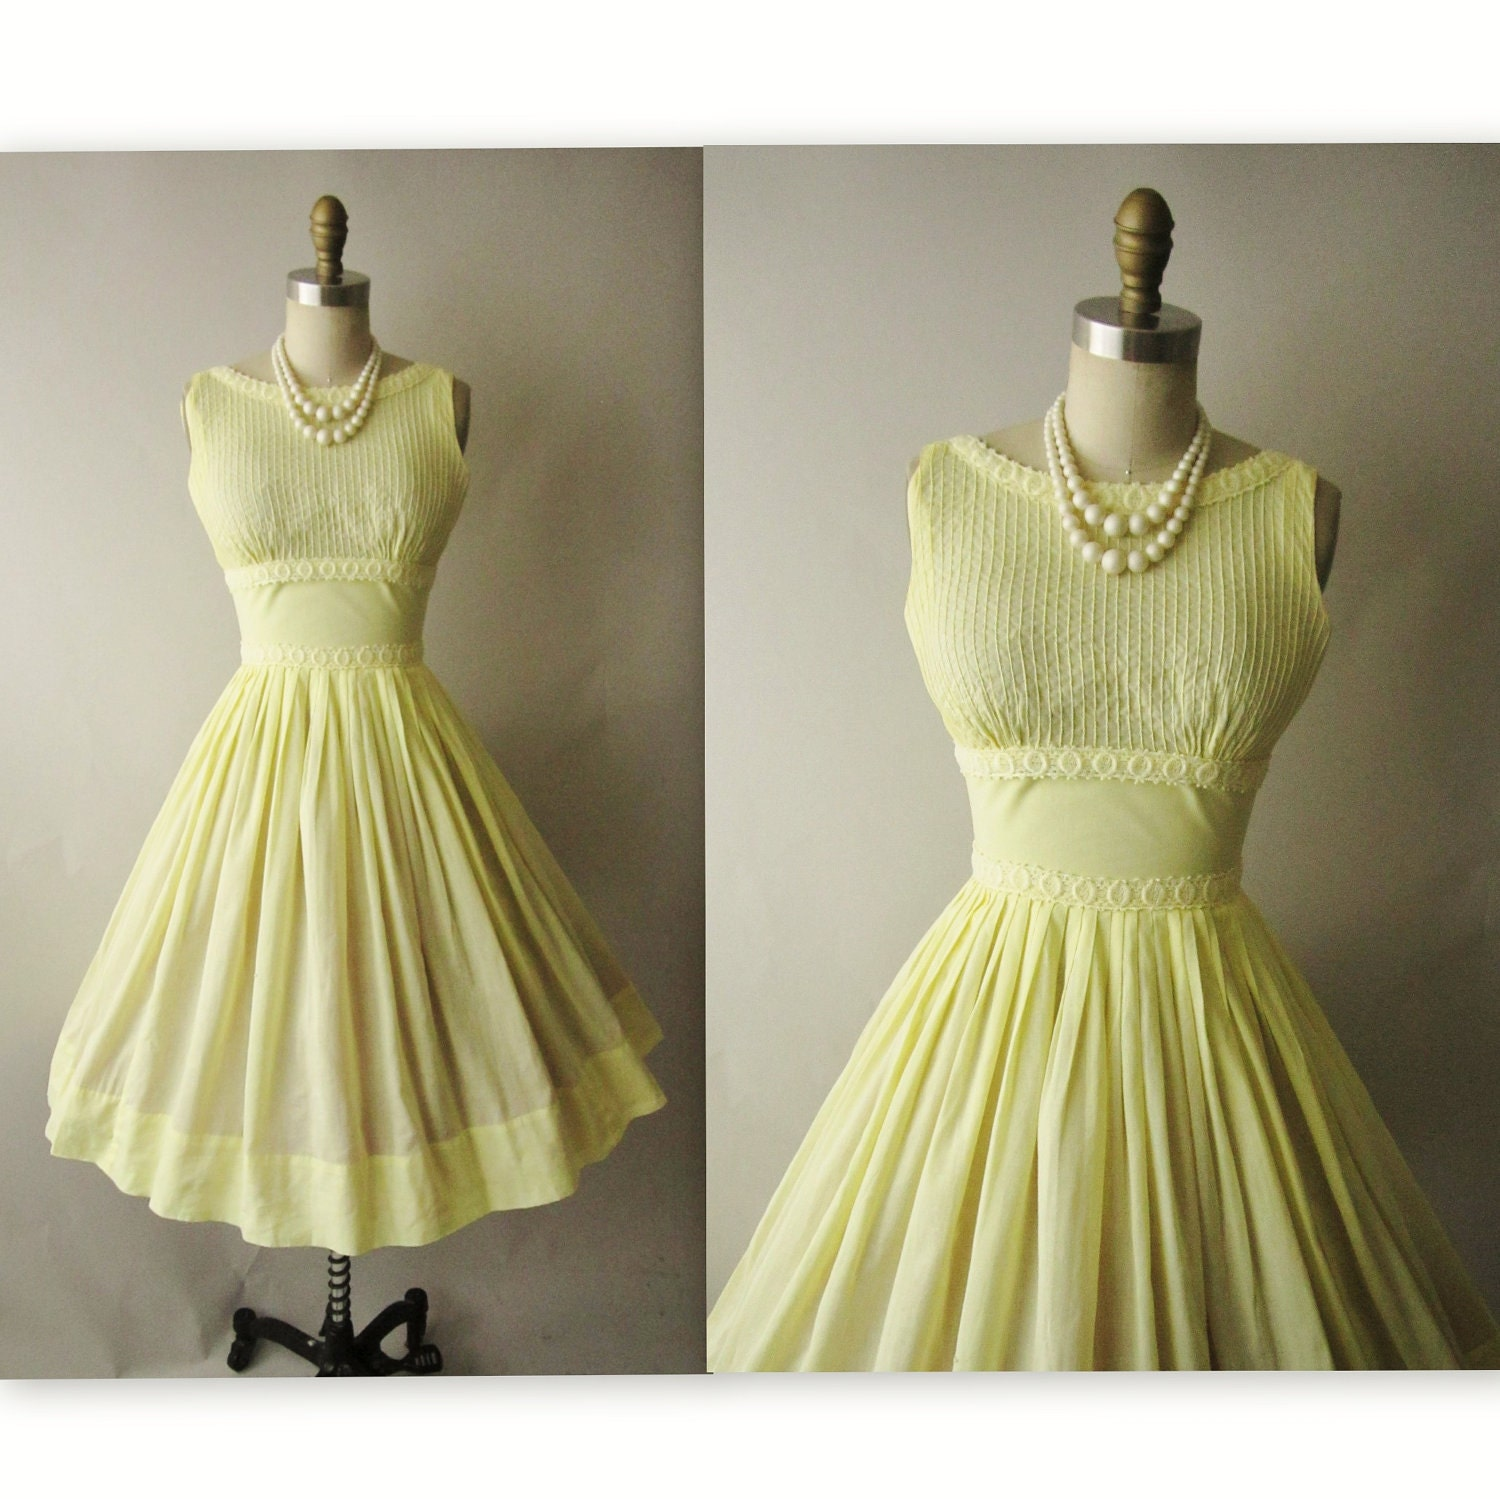 50's Summer Dress // Vintage 1950's Canary Yellow